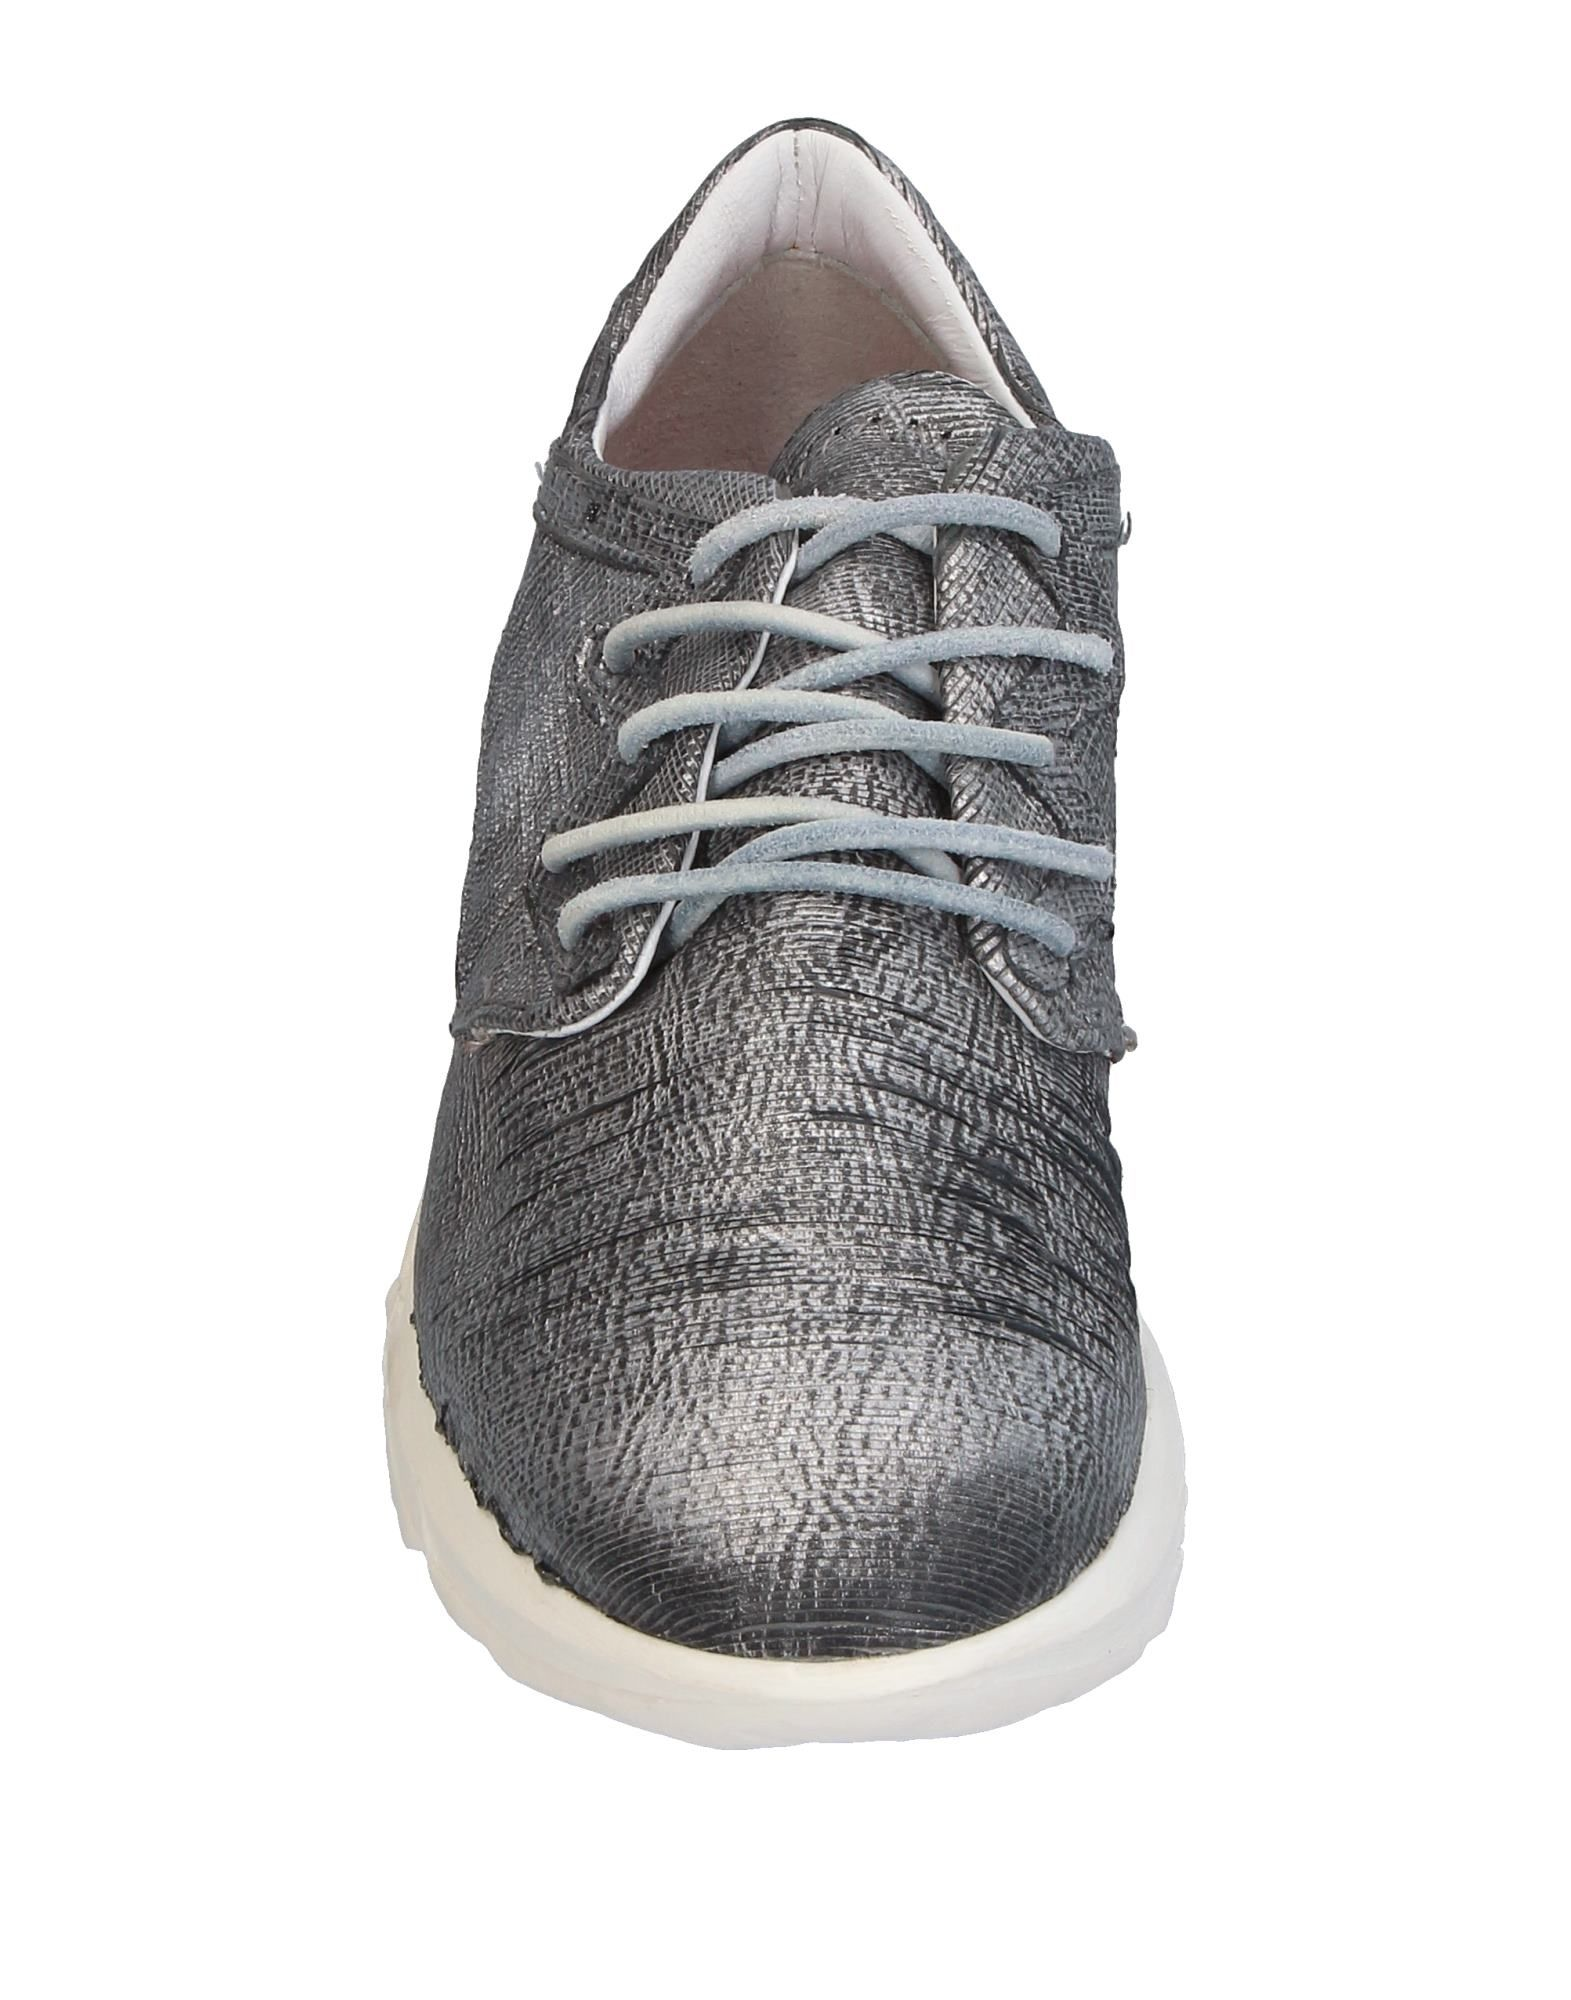 Sneakers A.S. 98 Femme - Sneakers A.S. 98 sur